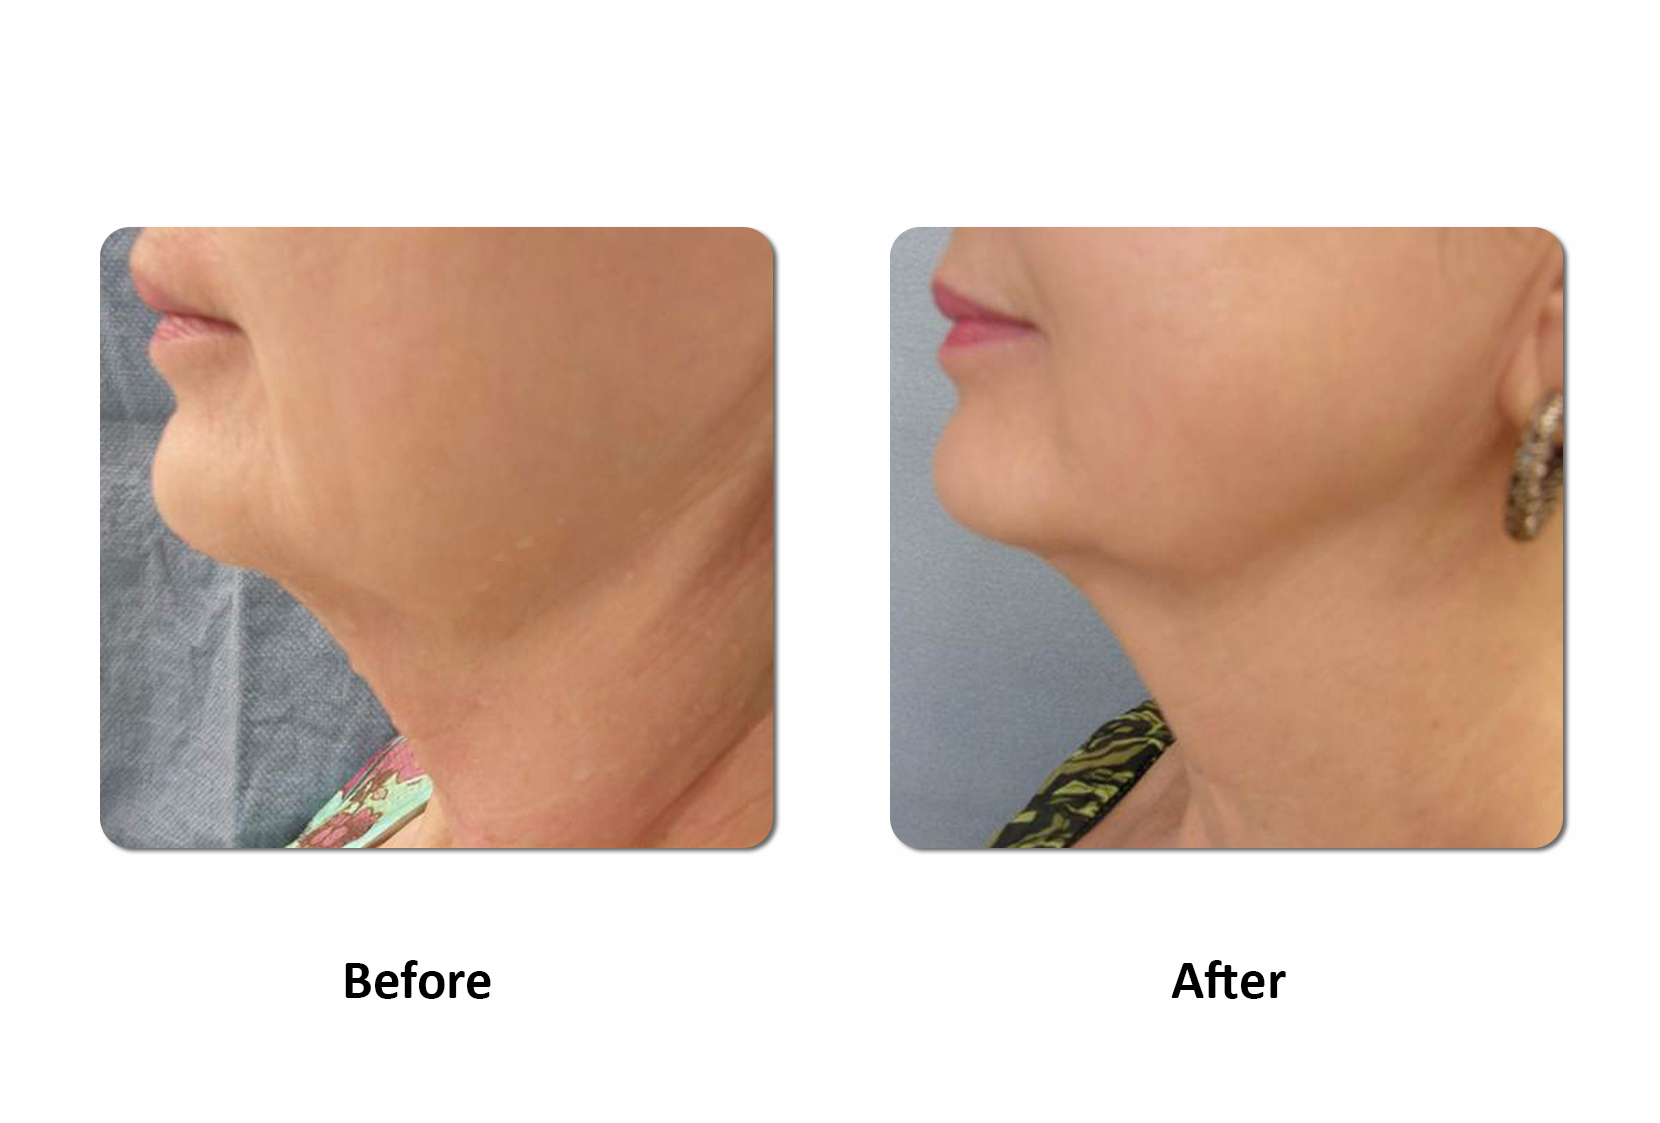 ReLift Chin before and After images